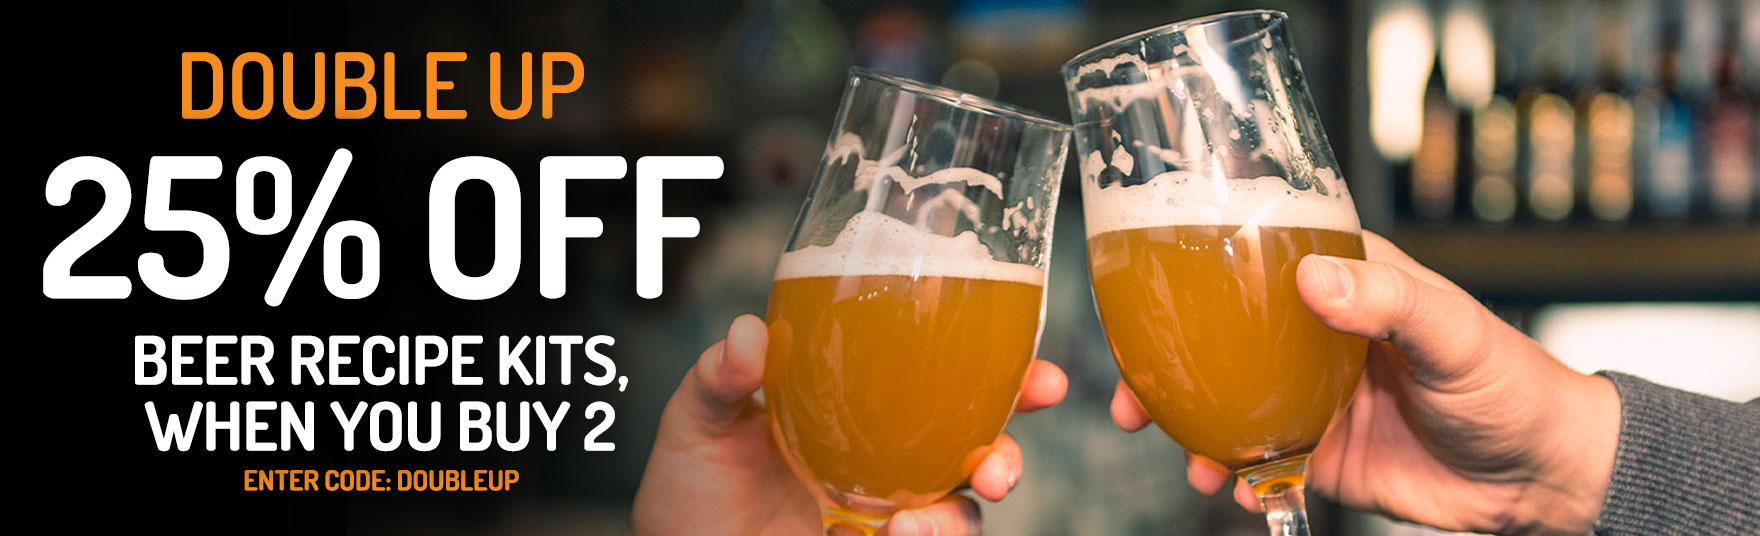 Save 25% Off Beer Kits When You Buy 2